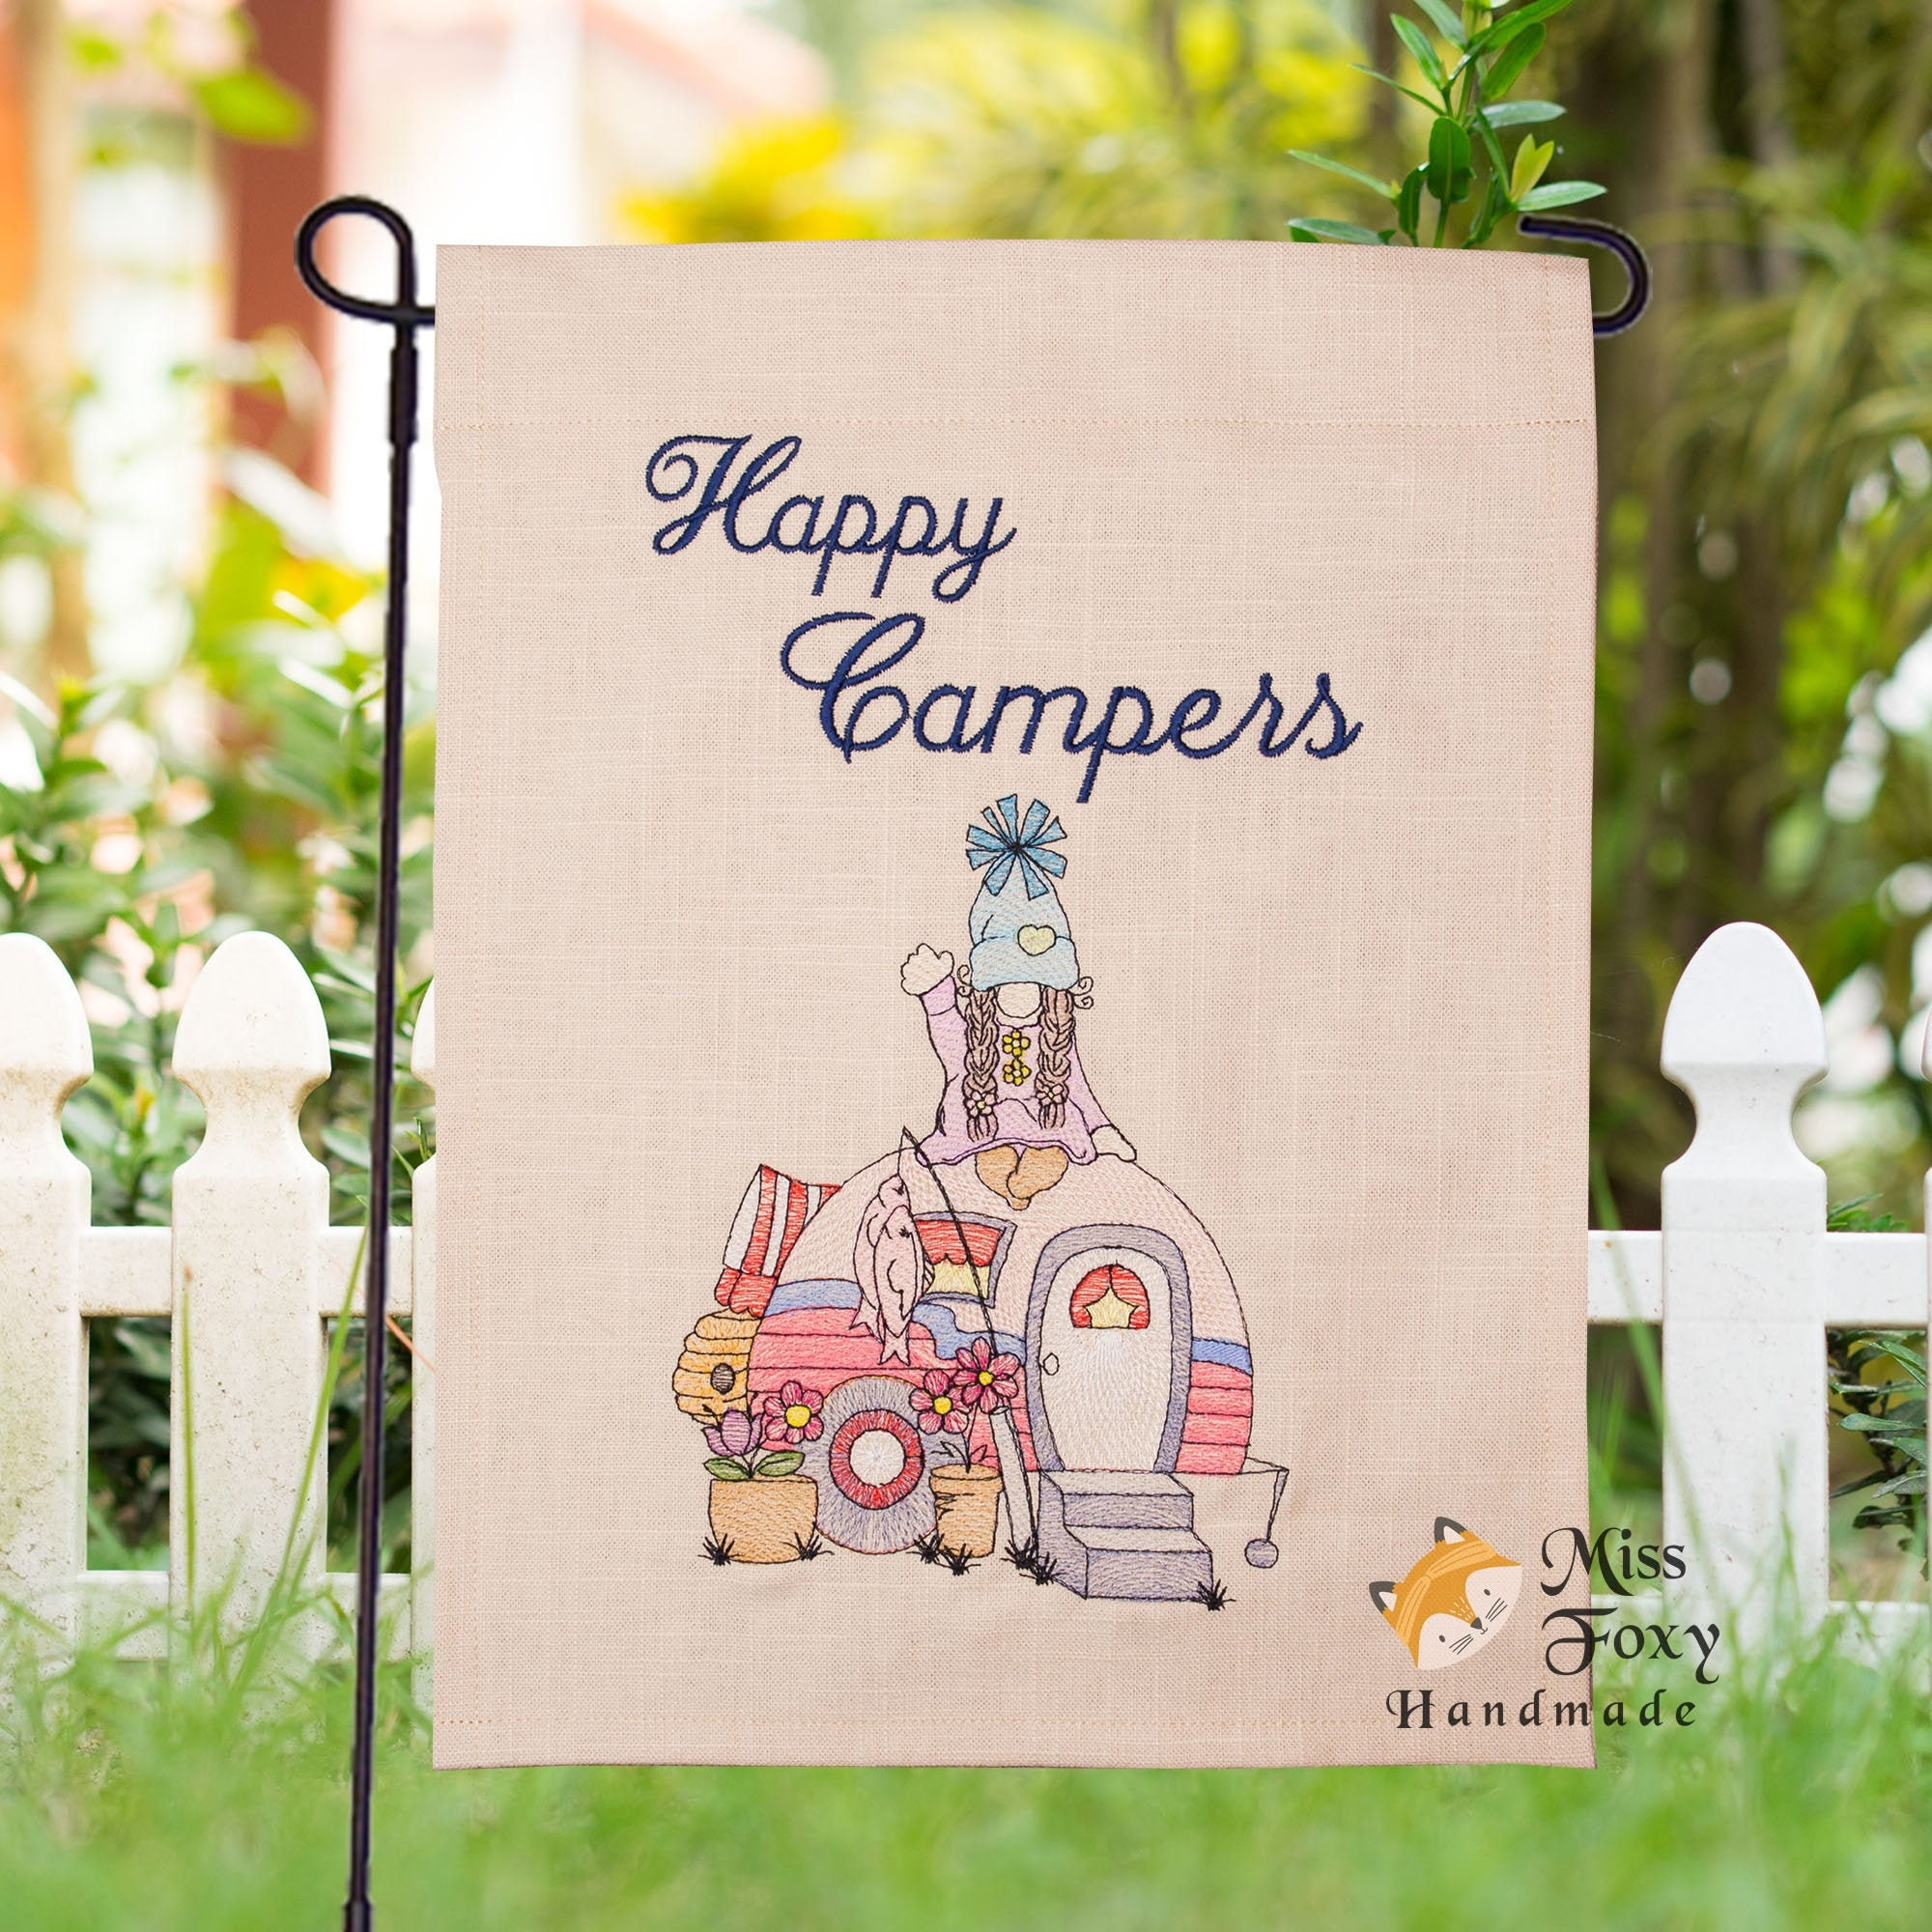 Happy Campers Girl Gnome Camping RV Camper Garden Flag Sign Embroidered  Fishing Trip House Warming Gift Summer Trip Bonfire RV Trailer